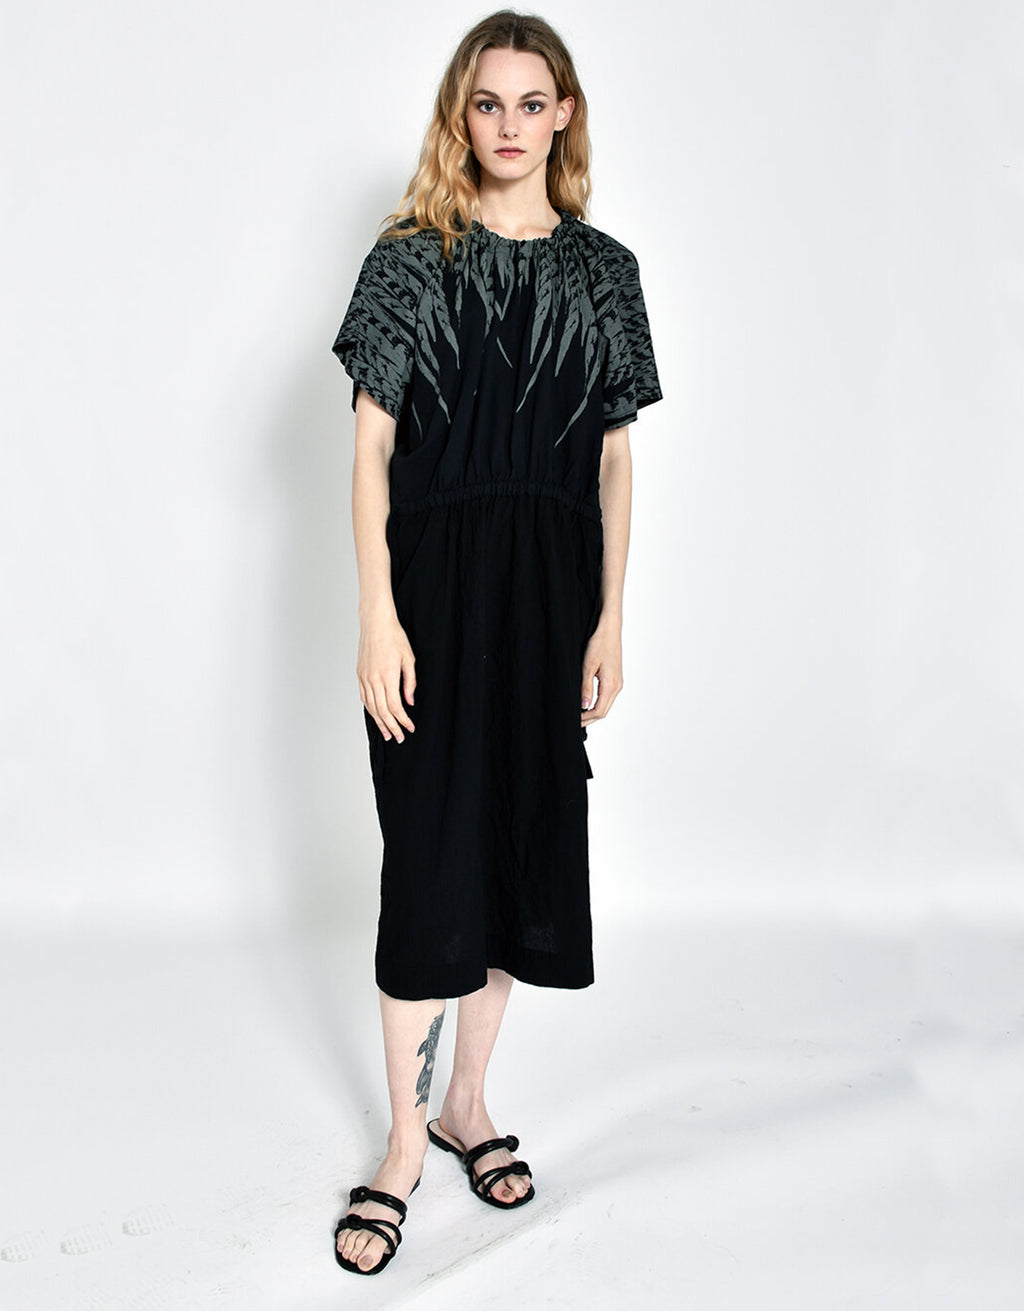 Model wears UZY NYC Earth Dress in Black with Grey feather detail. Available at FAWN Toronto.